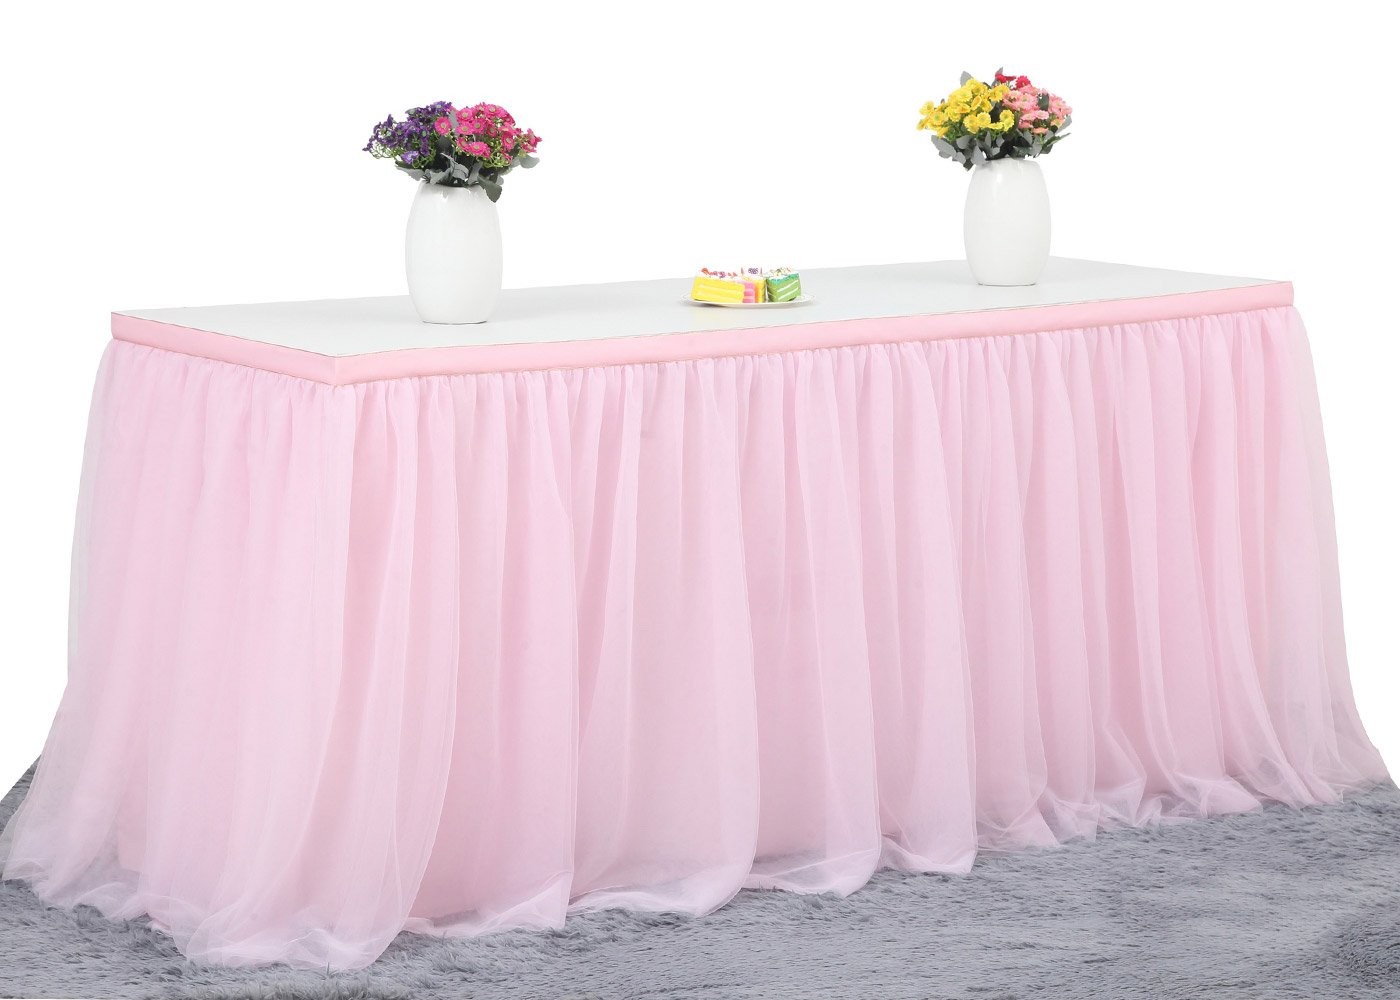 9FT Pink Tulle Table Skirt High-end Gold Brim 3 Layer Round or Rectangle Tables Mesh Tutu Table Skirting Fluffy and Elegant for Baby Show,Birthday Party,Wedding Decoration.(L108in, H30in) by CO-AVE